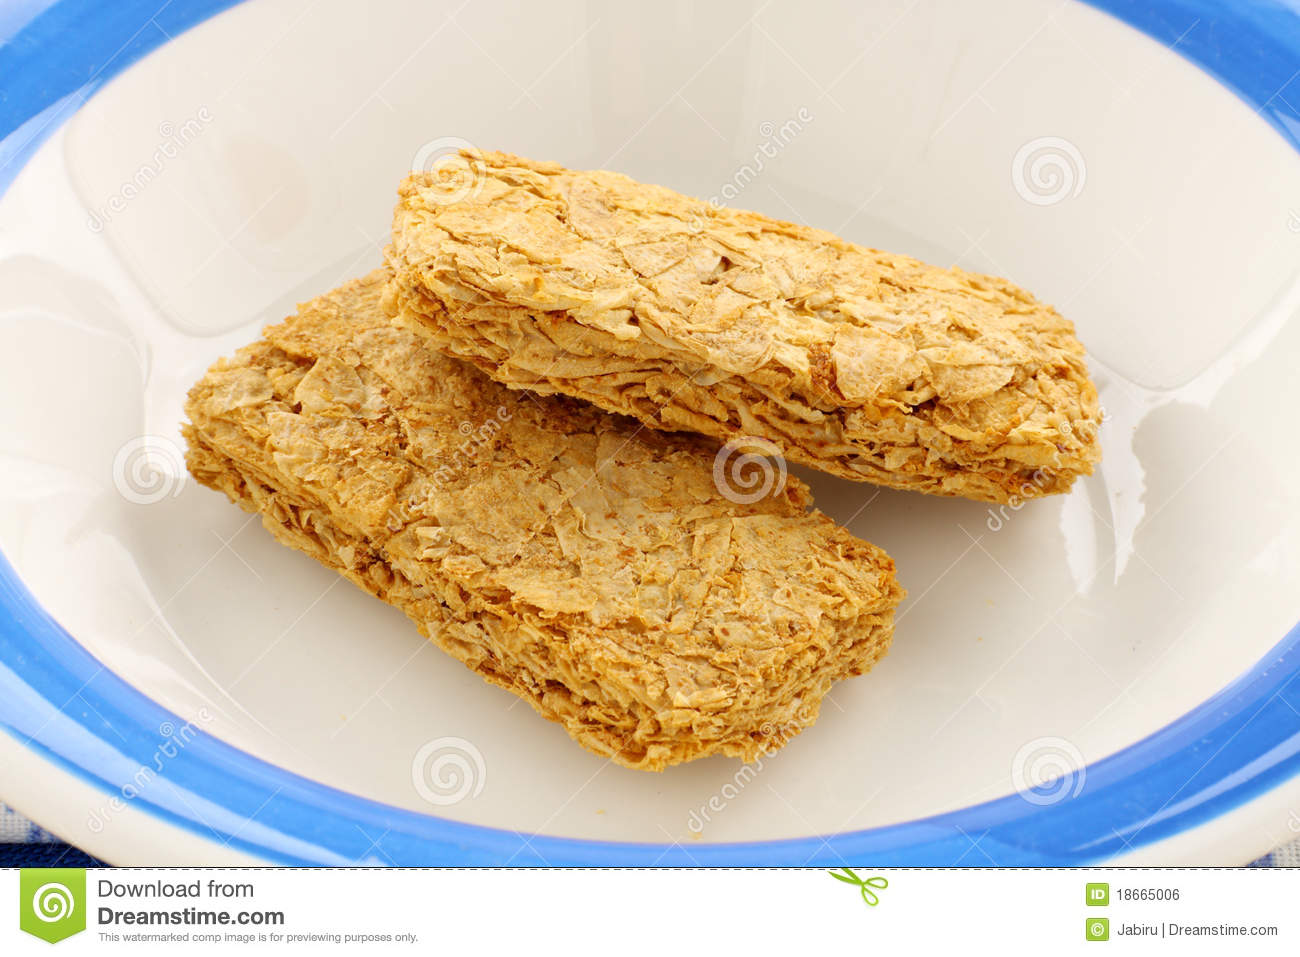 Iconic Australian breakfast cereal Weet Bix served in a bowl.